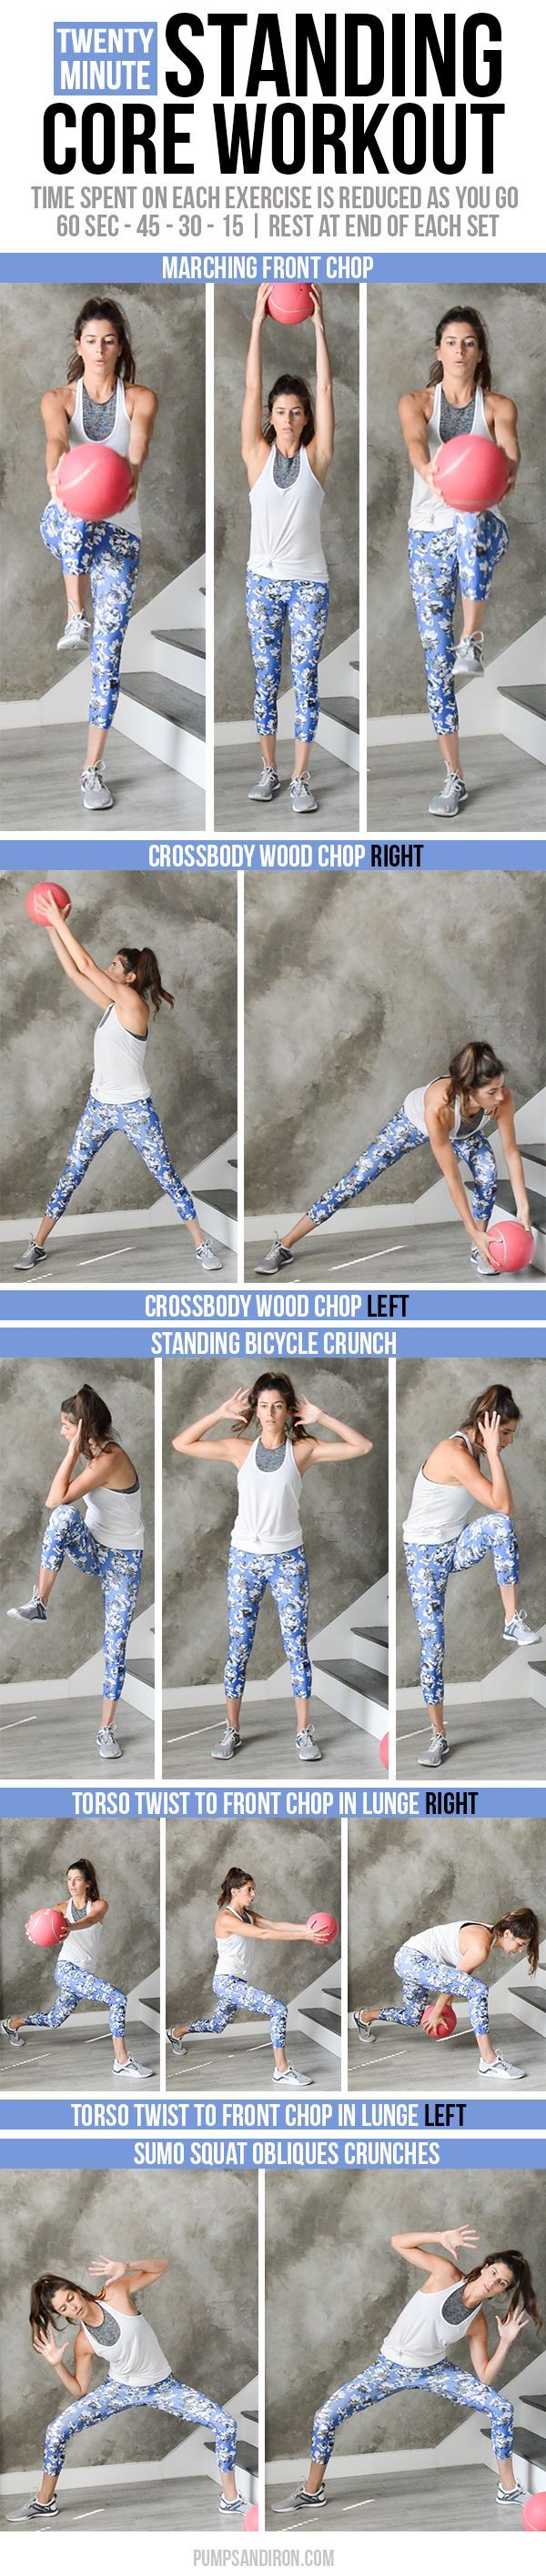 Standing Core Workout | Pumps & Iron